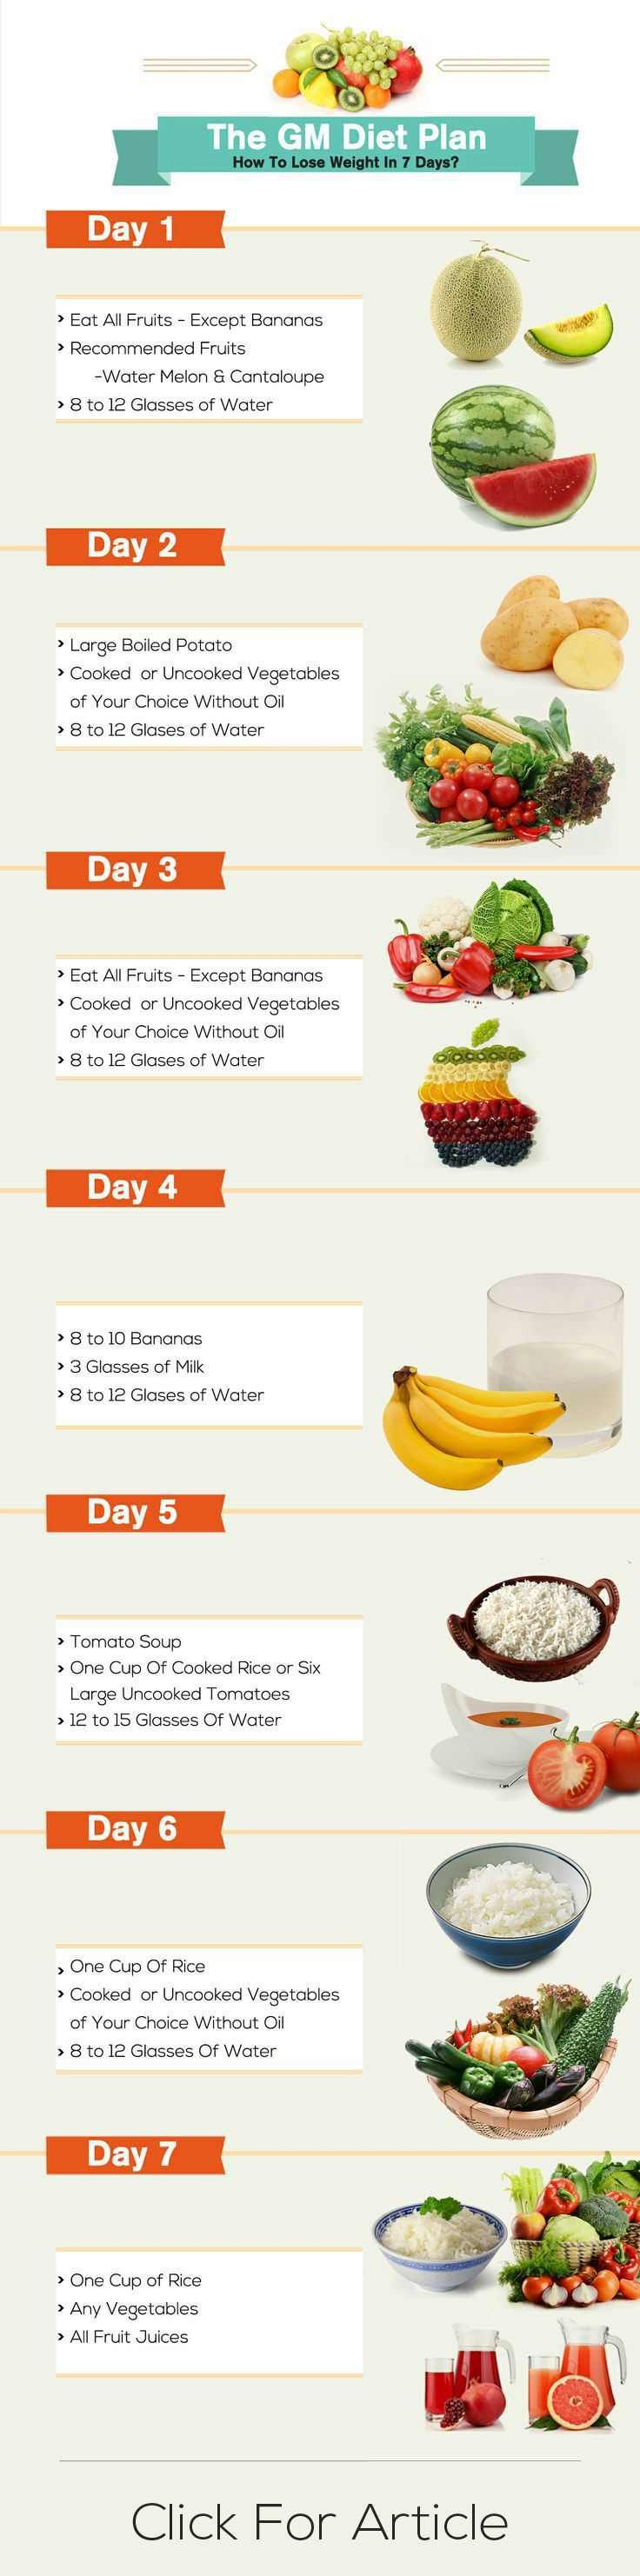 The Gm Diet program is enjoying a recovery as this forgotten gem was developed together with Food and drug administration and state assistance and financing. It does the job and is also east to understand. On top of that it is completely free. click on the image to like my facebook page